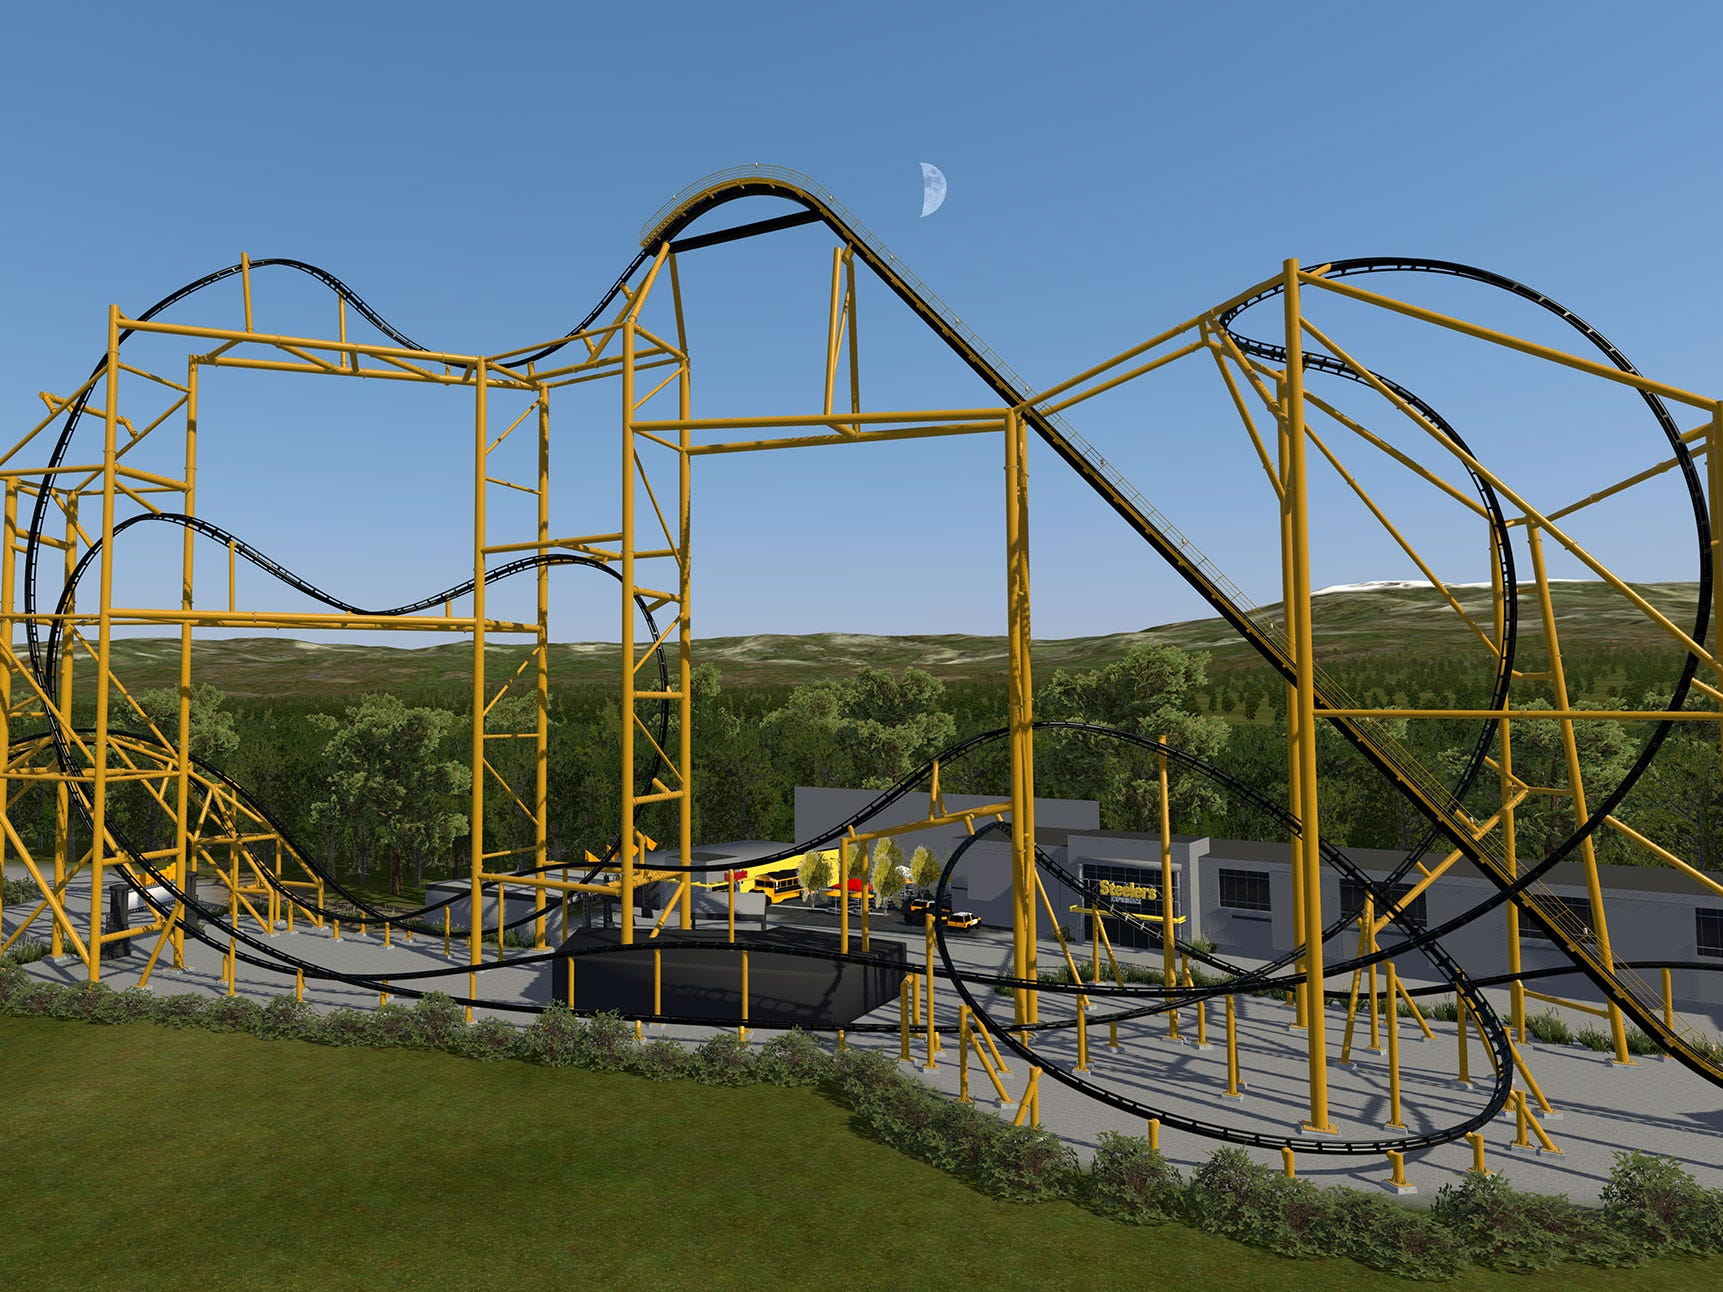 The new Steel Curtain roller coaster will be 220 feet tall, making it Pennsylvania's tallest coaster (and one of the tallest in the country).